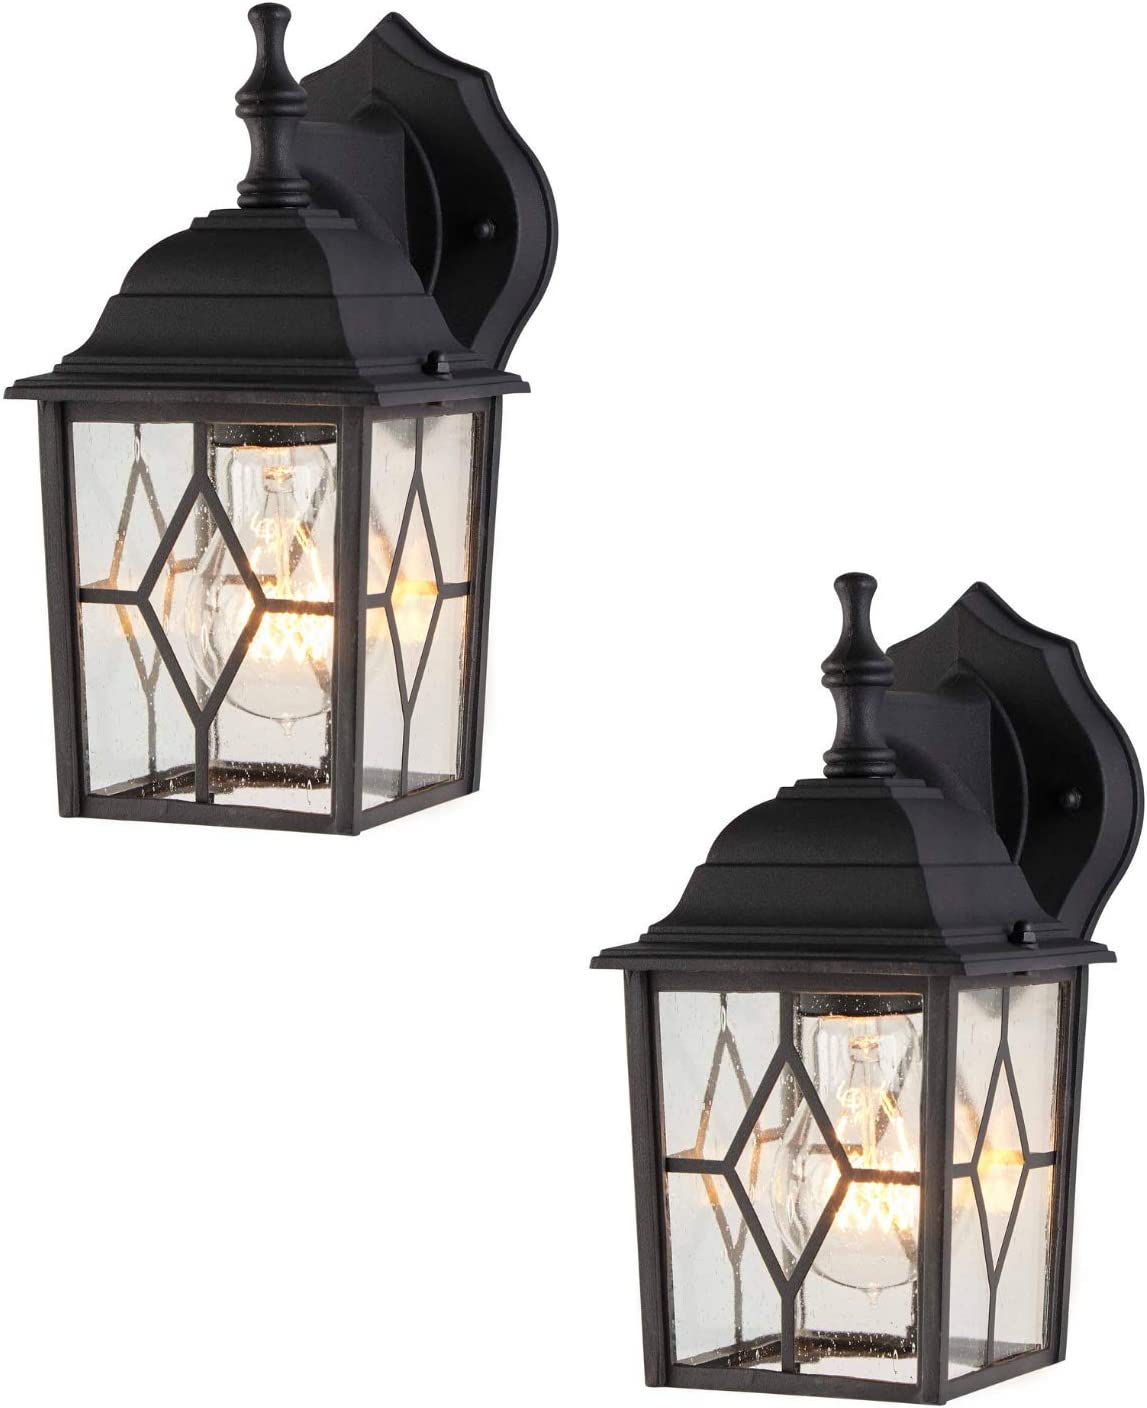 NOMA 2-Pack Outdoor Wall Waterproof Rapid rise Down-Facin Lantern Los Angeles Mall